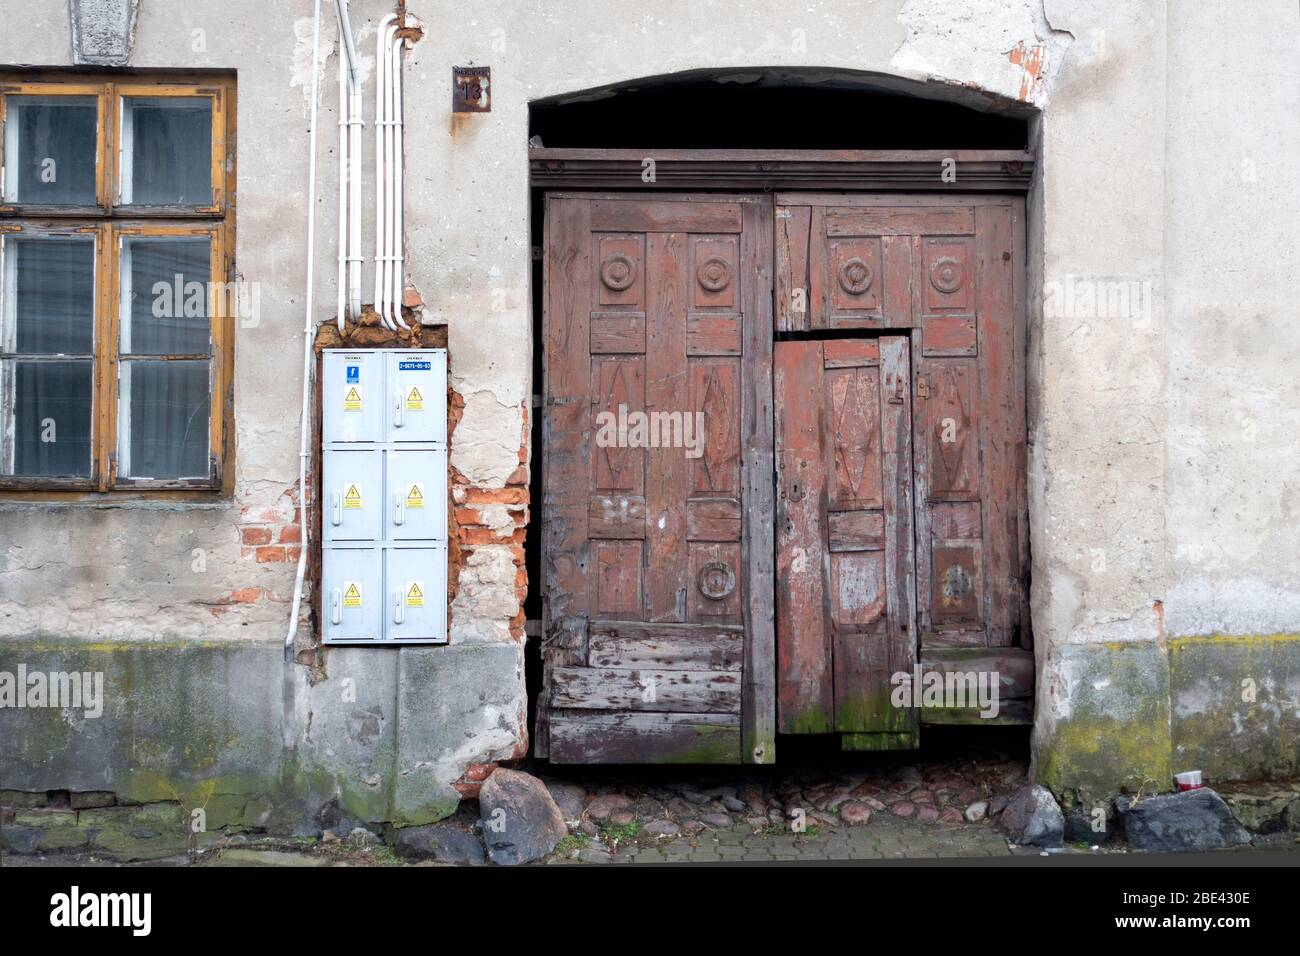 Rough well worn door for apartments with electrical fuse boxes on the side . Tomaszow Mazowiecki Central Poland Stock Photo